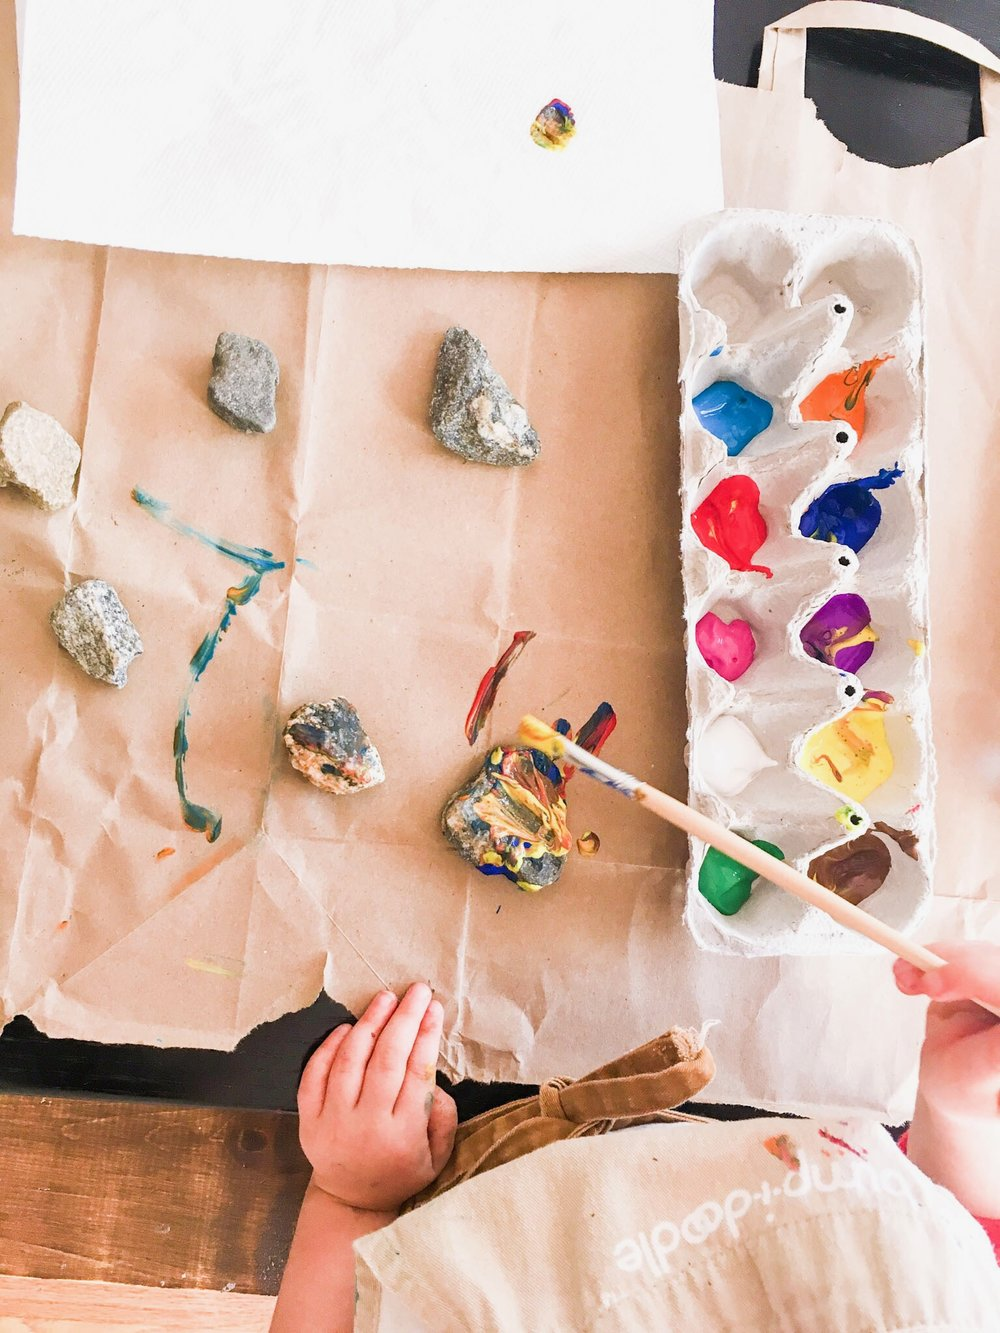 Painting with Preschoolers